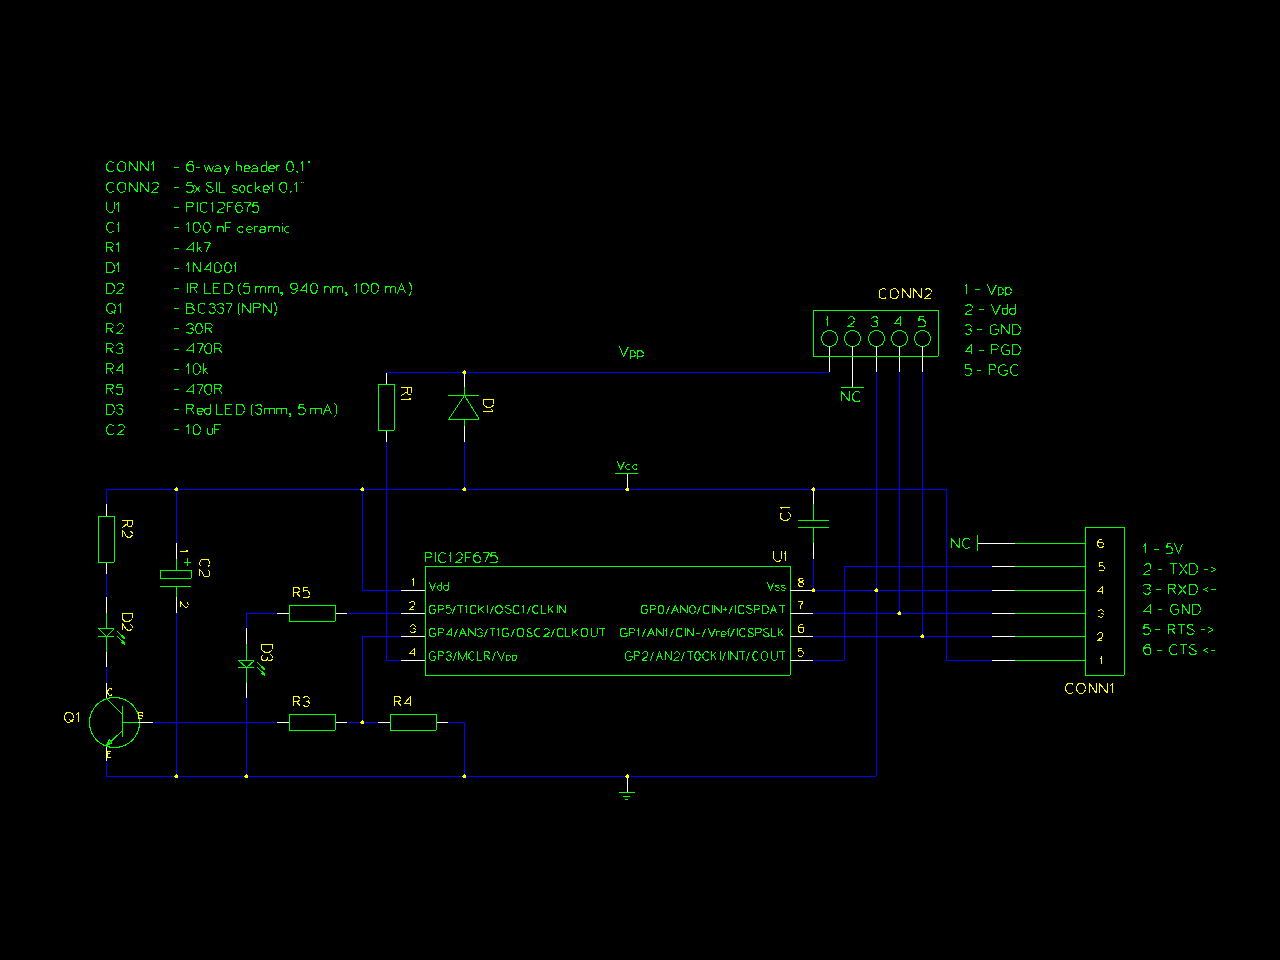 Cable Set Top Box Circuit Diagram Detailed Schematic Diagrams Also Electronic On Digital Infra Red Transmitter Motorola